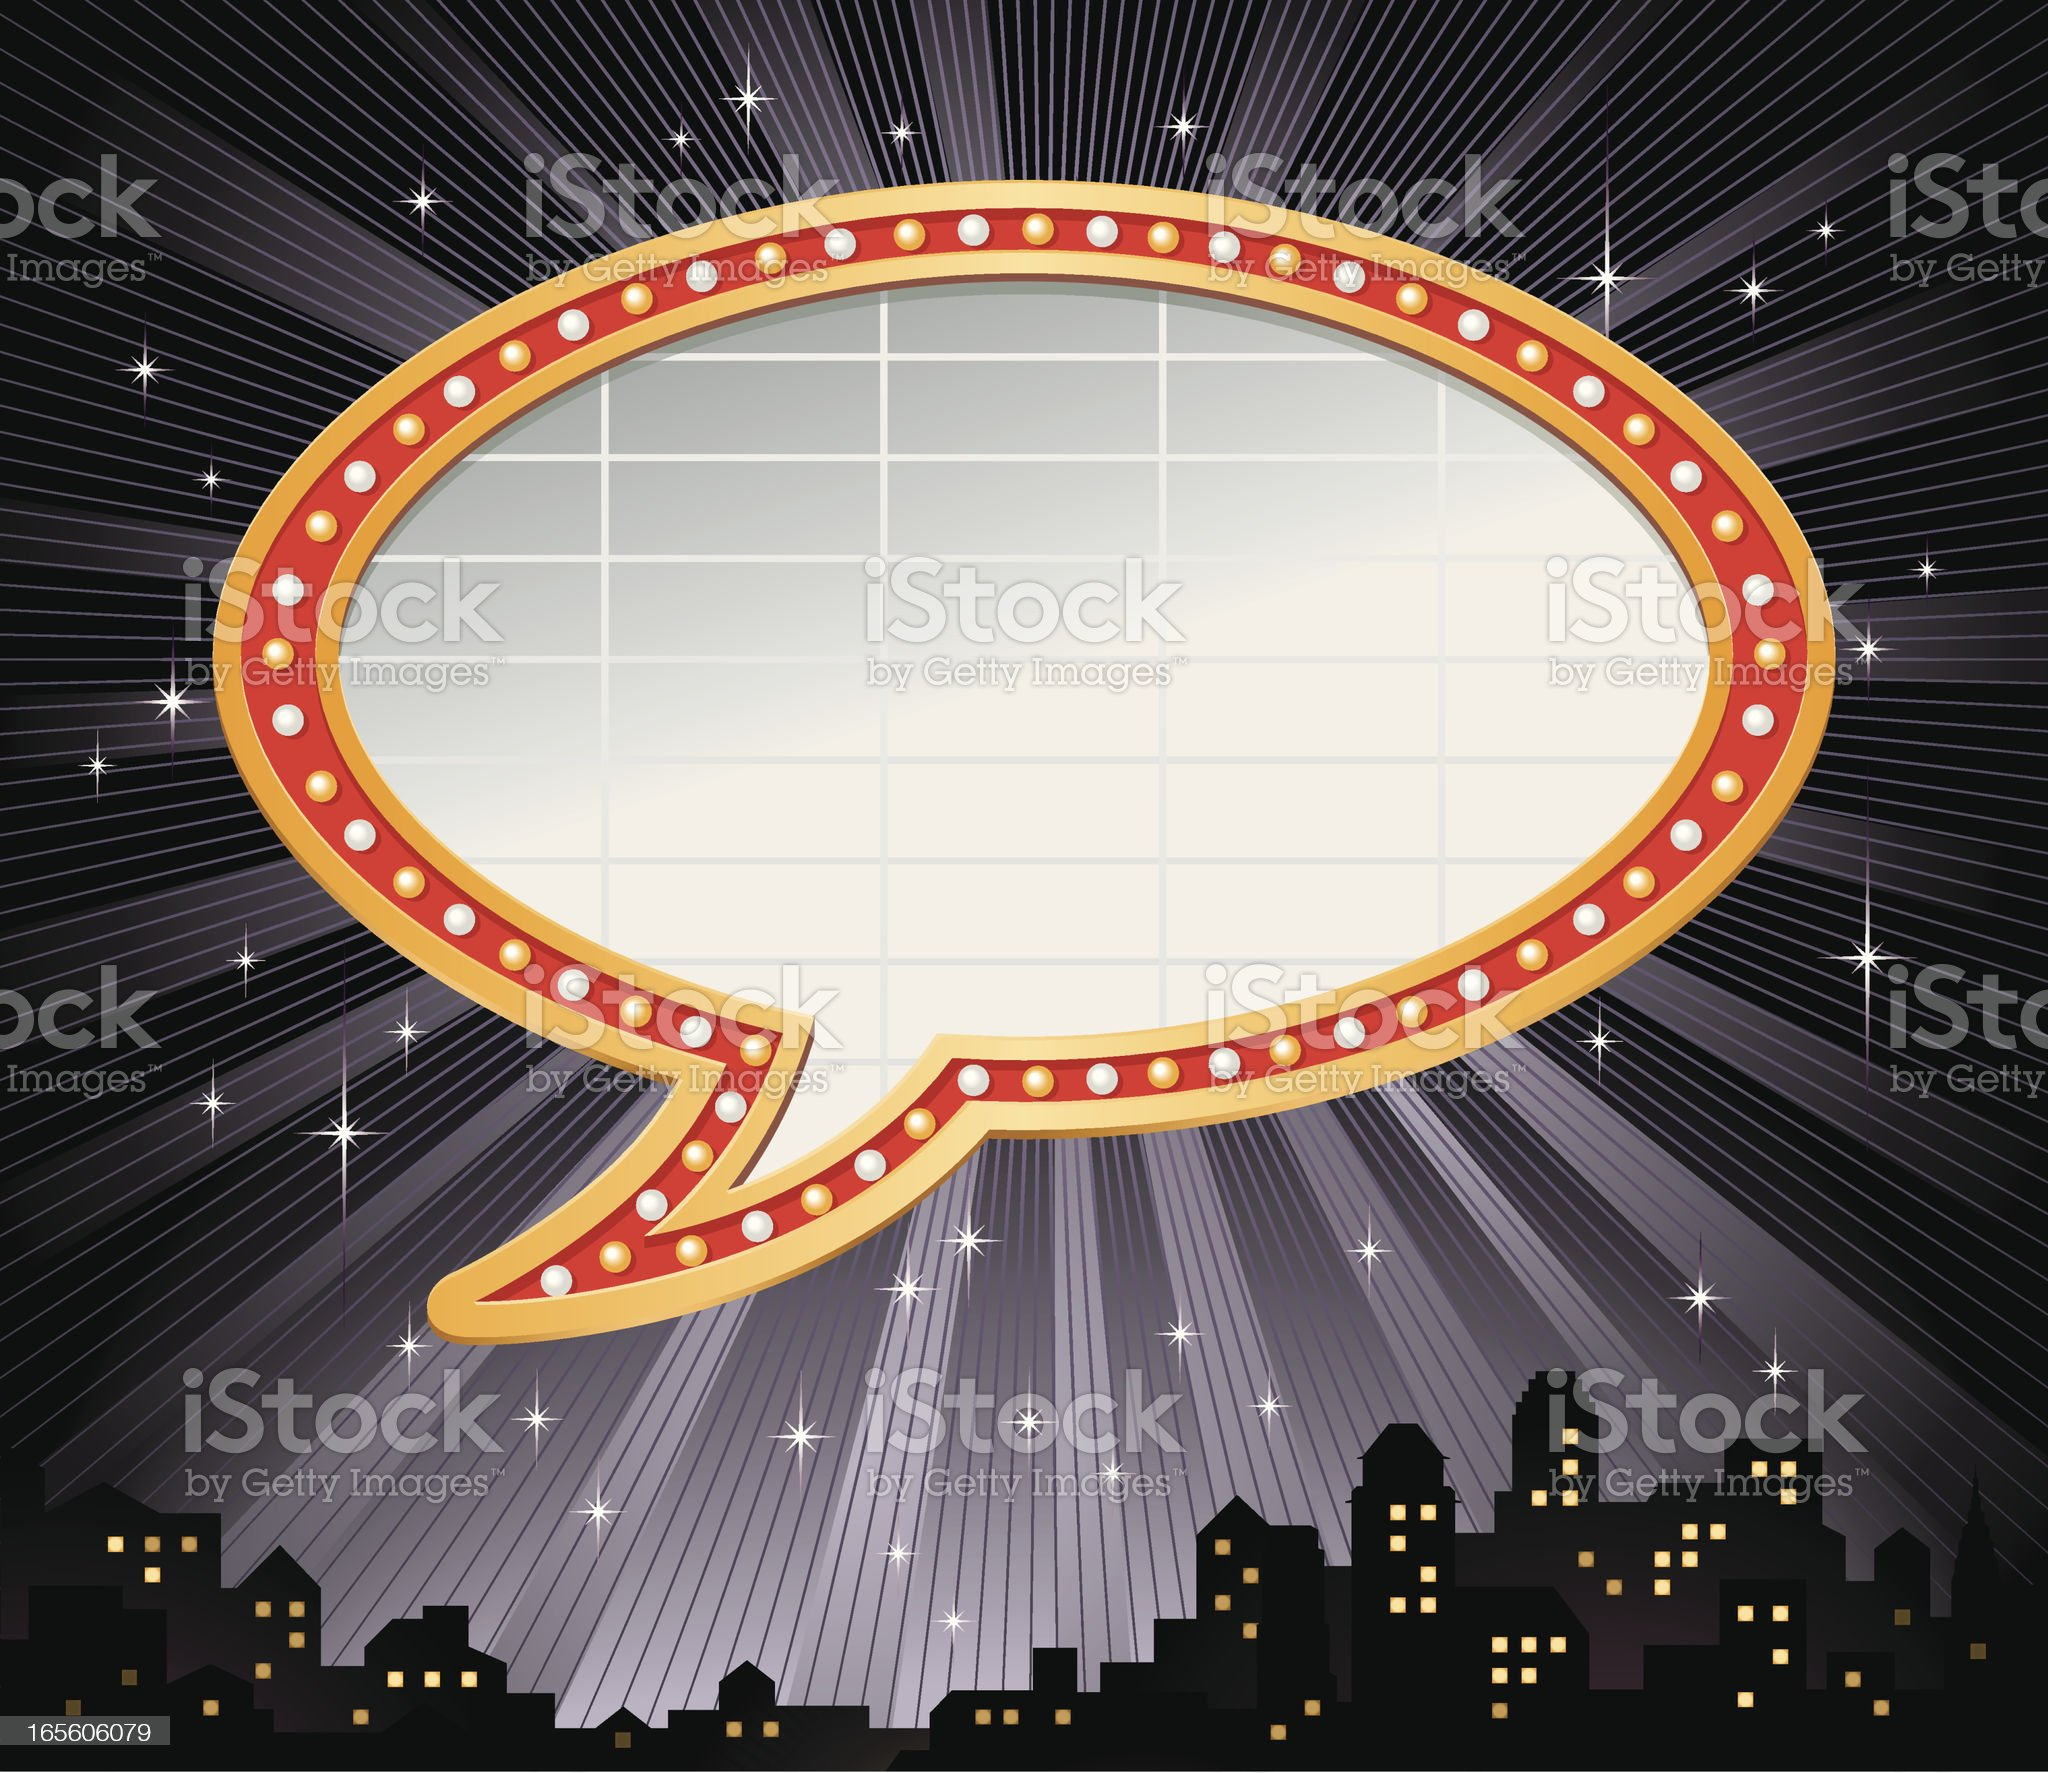 Talking Bubble Marquee Frame Vector royalty-free stock vector art